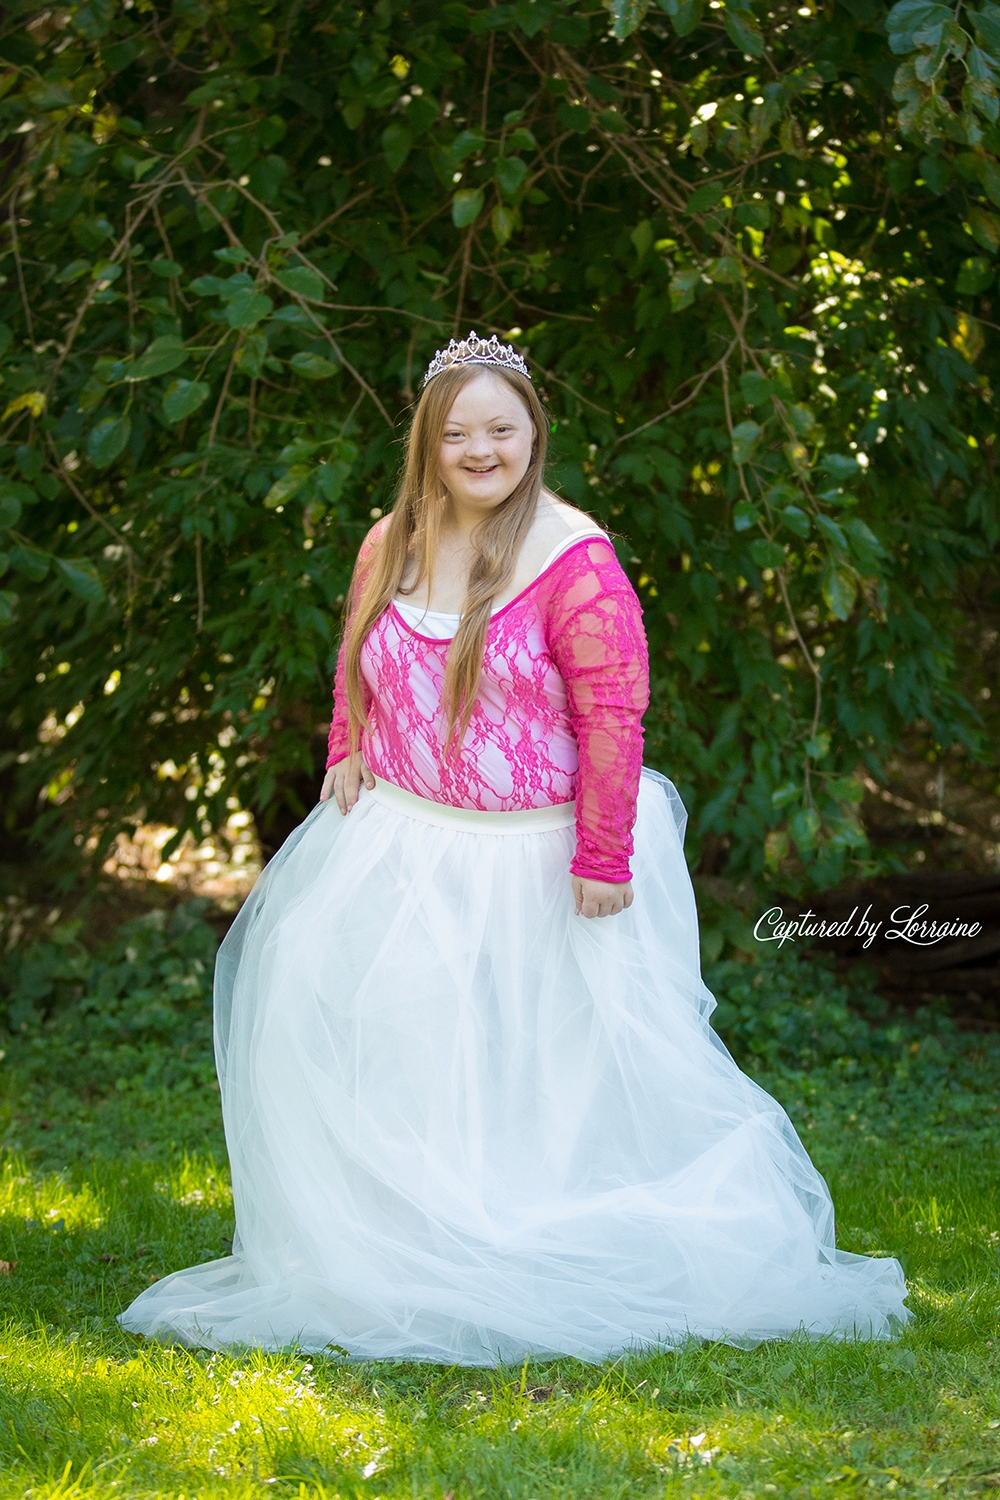 down syndrome Princess Photos Illinois (11)